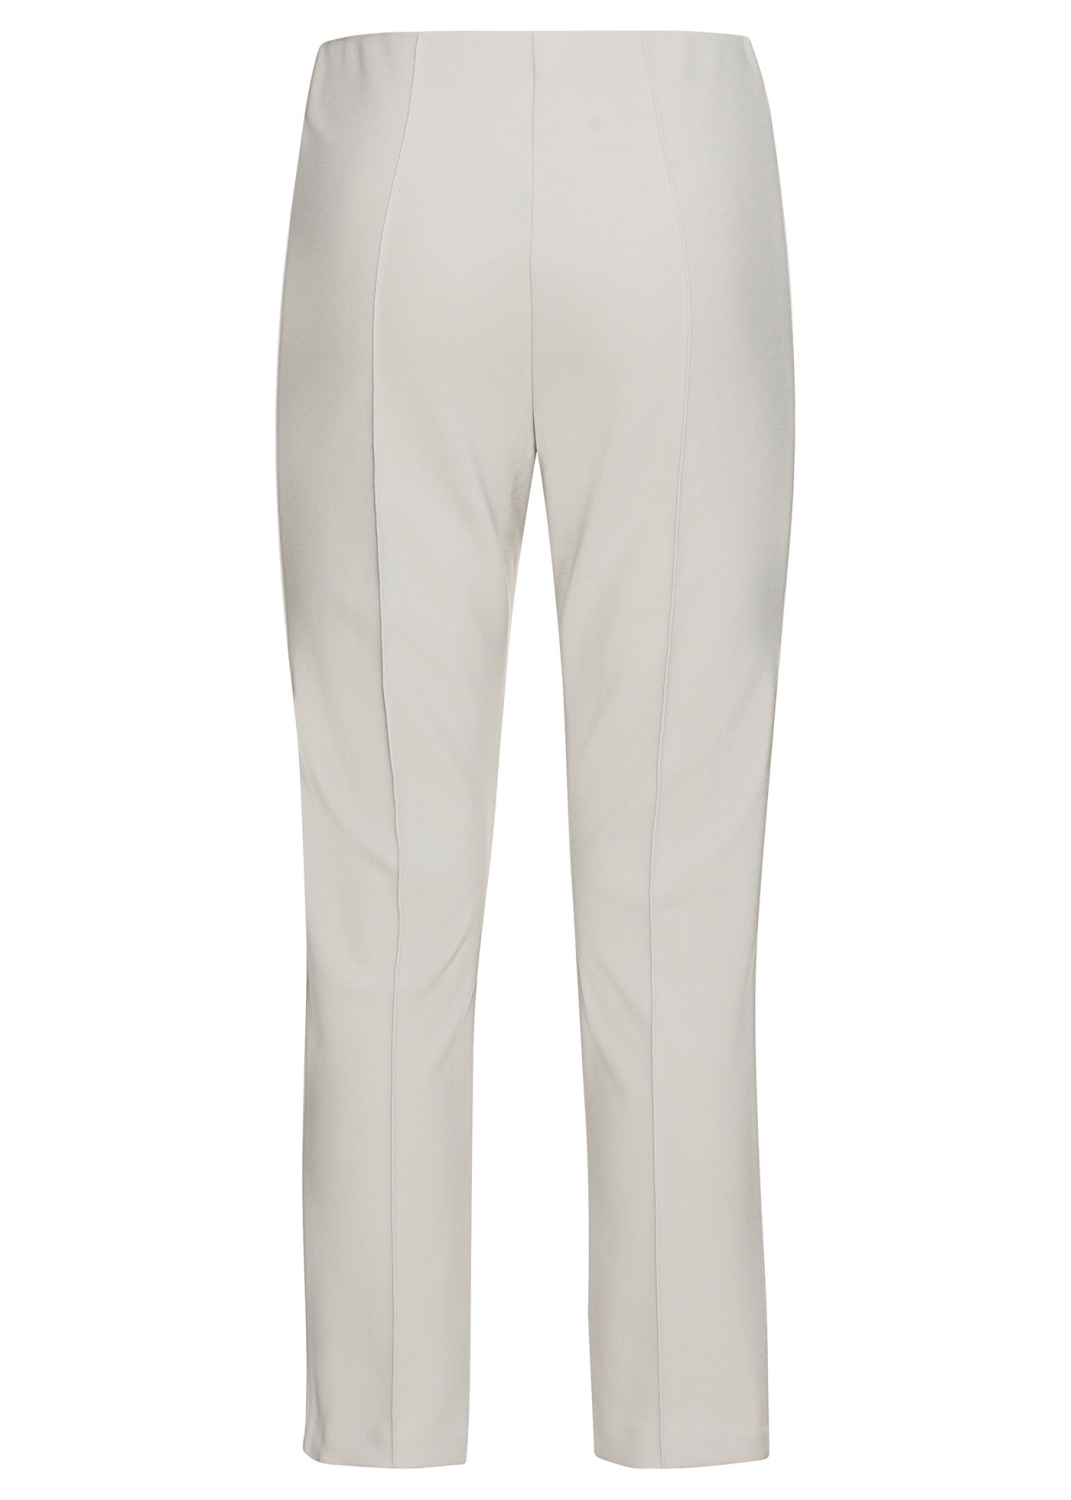 Knitted synthetic fibre sweatpants female image number 1